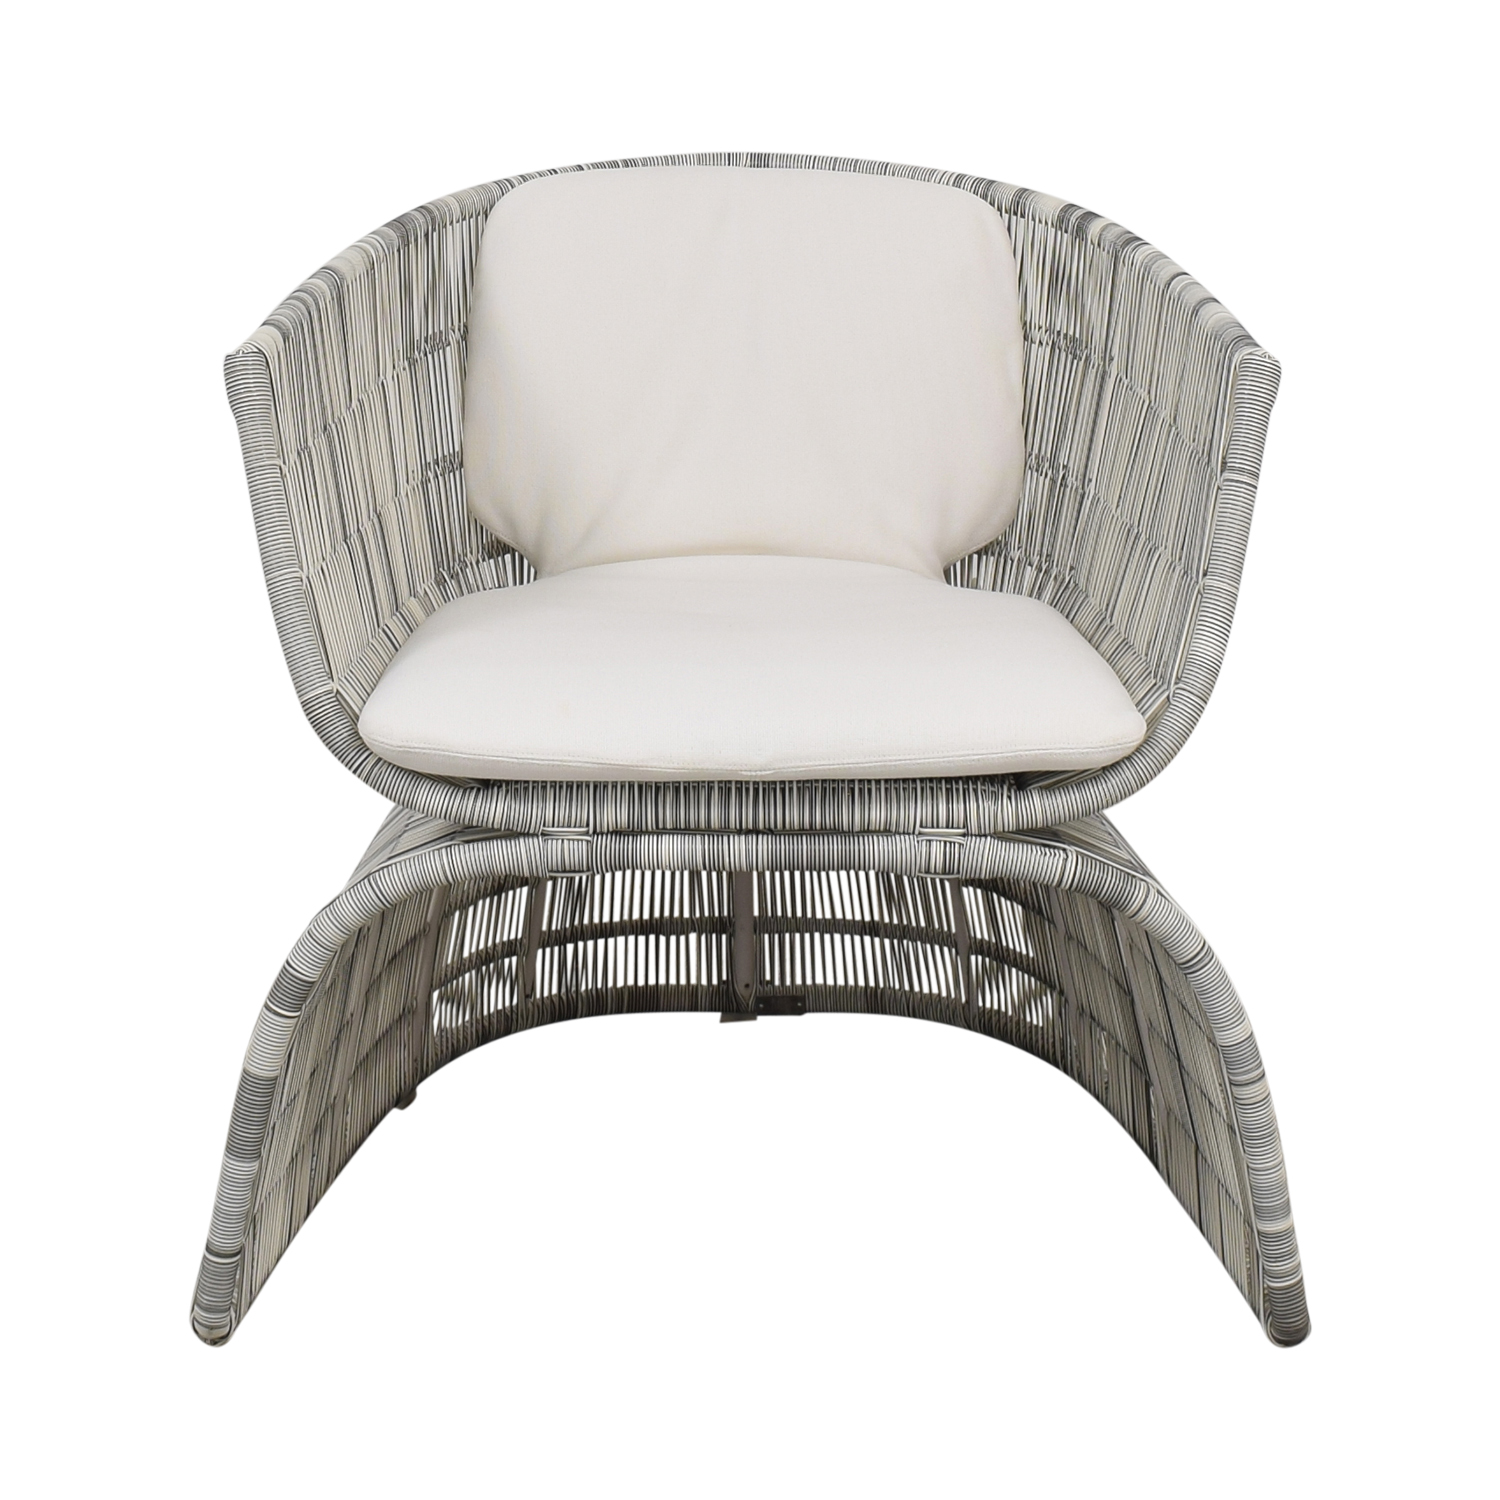 B&B Italia Crinoline Armchair / Accent Chairs